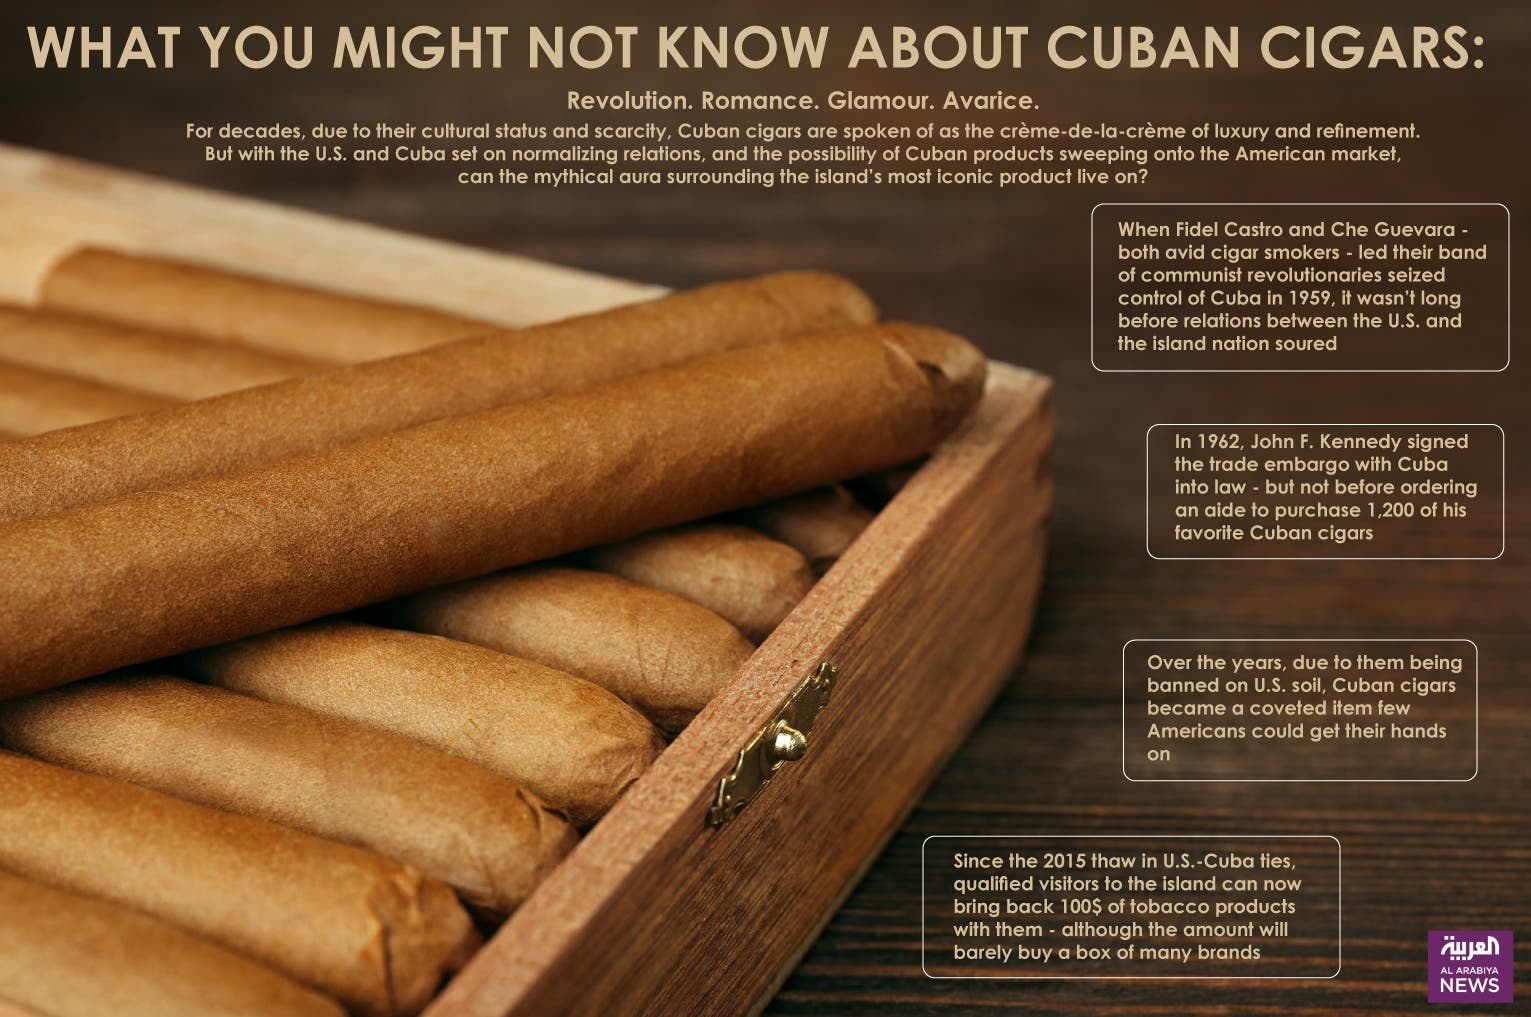 Infographic: What you might not know about Cuban cigars